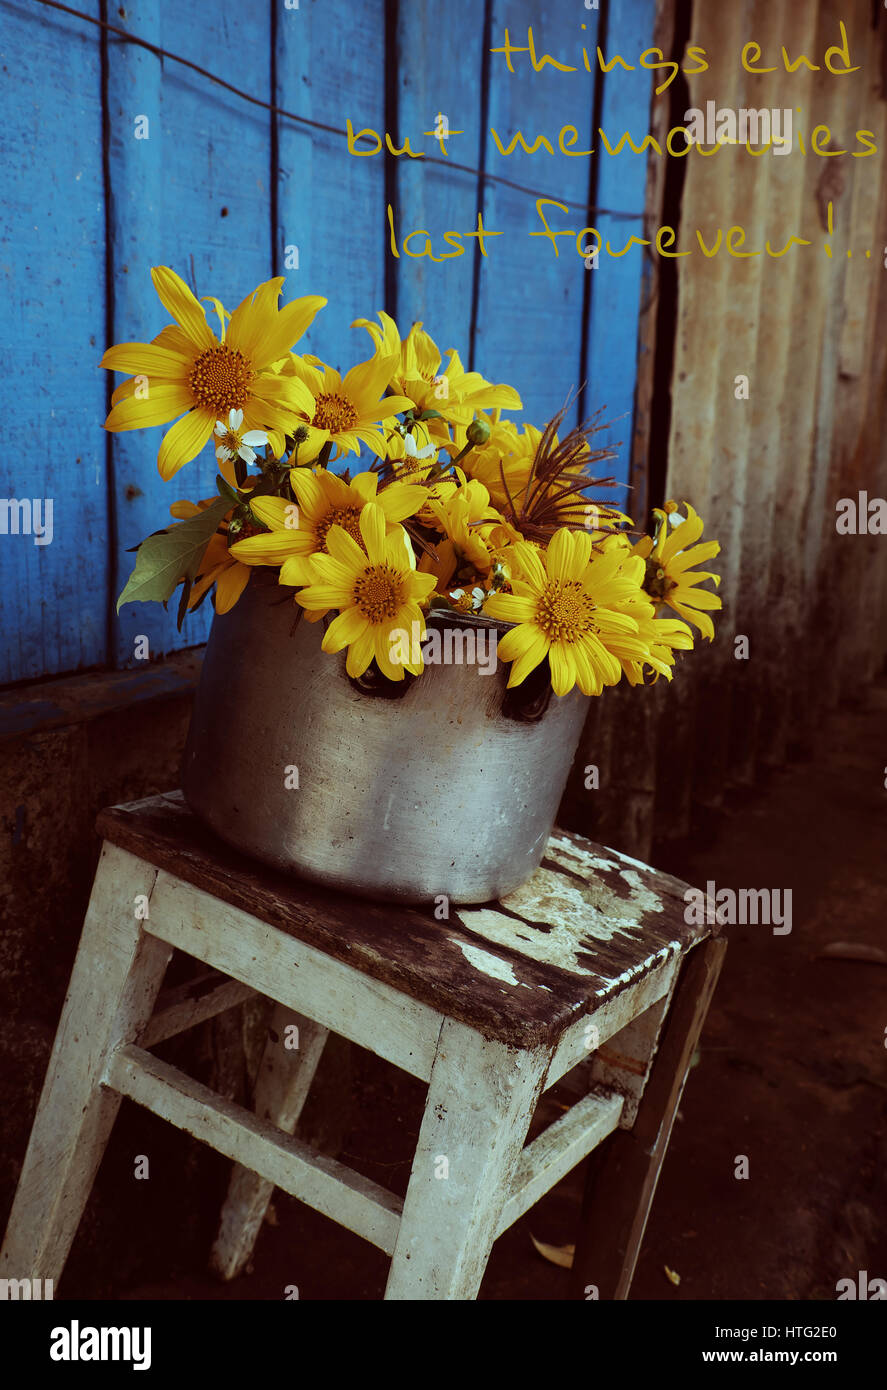 Vintage Background With Apologize For Break Up Of Love, Hurt, Sorry Text  And Missing, Concept From Wild Sunflower On Rustic Blue Wooden Background